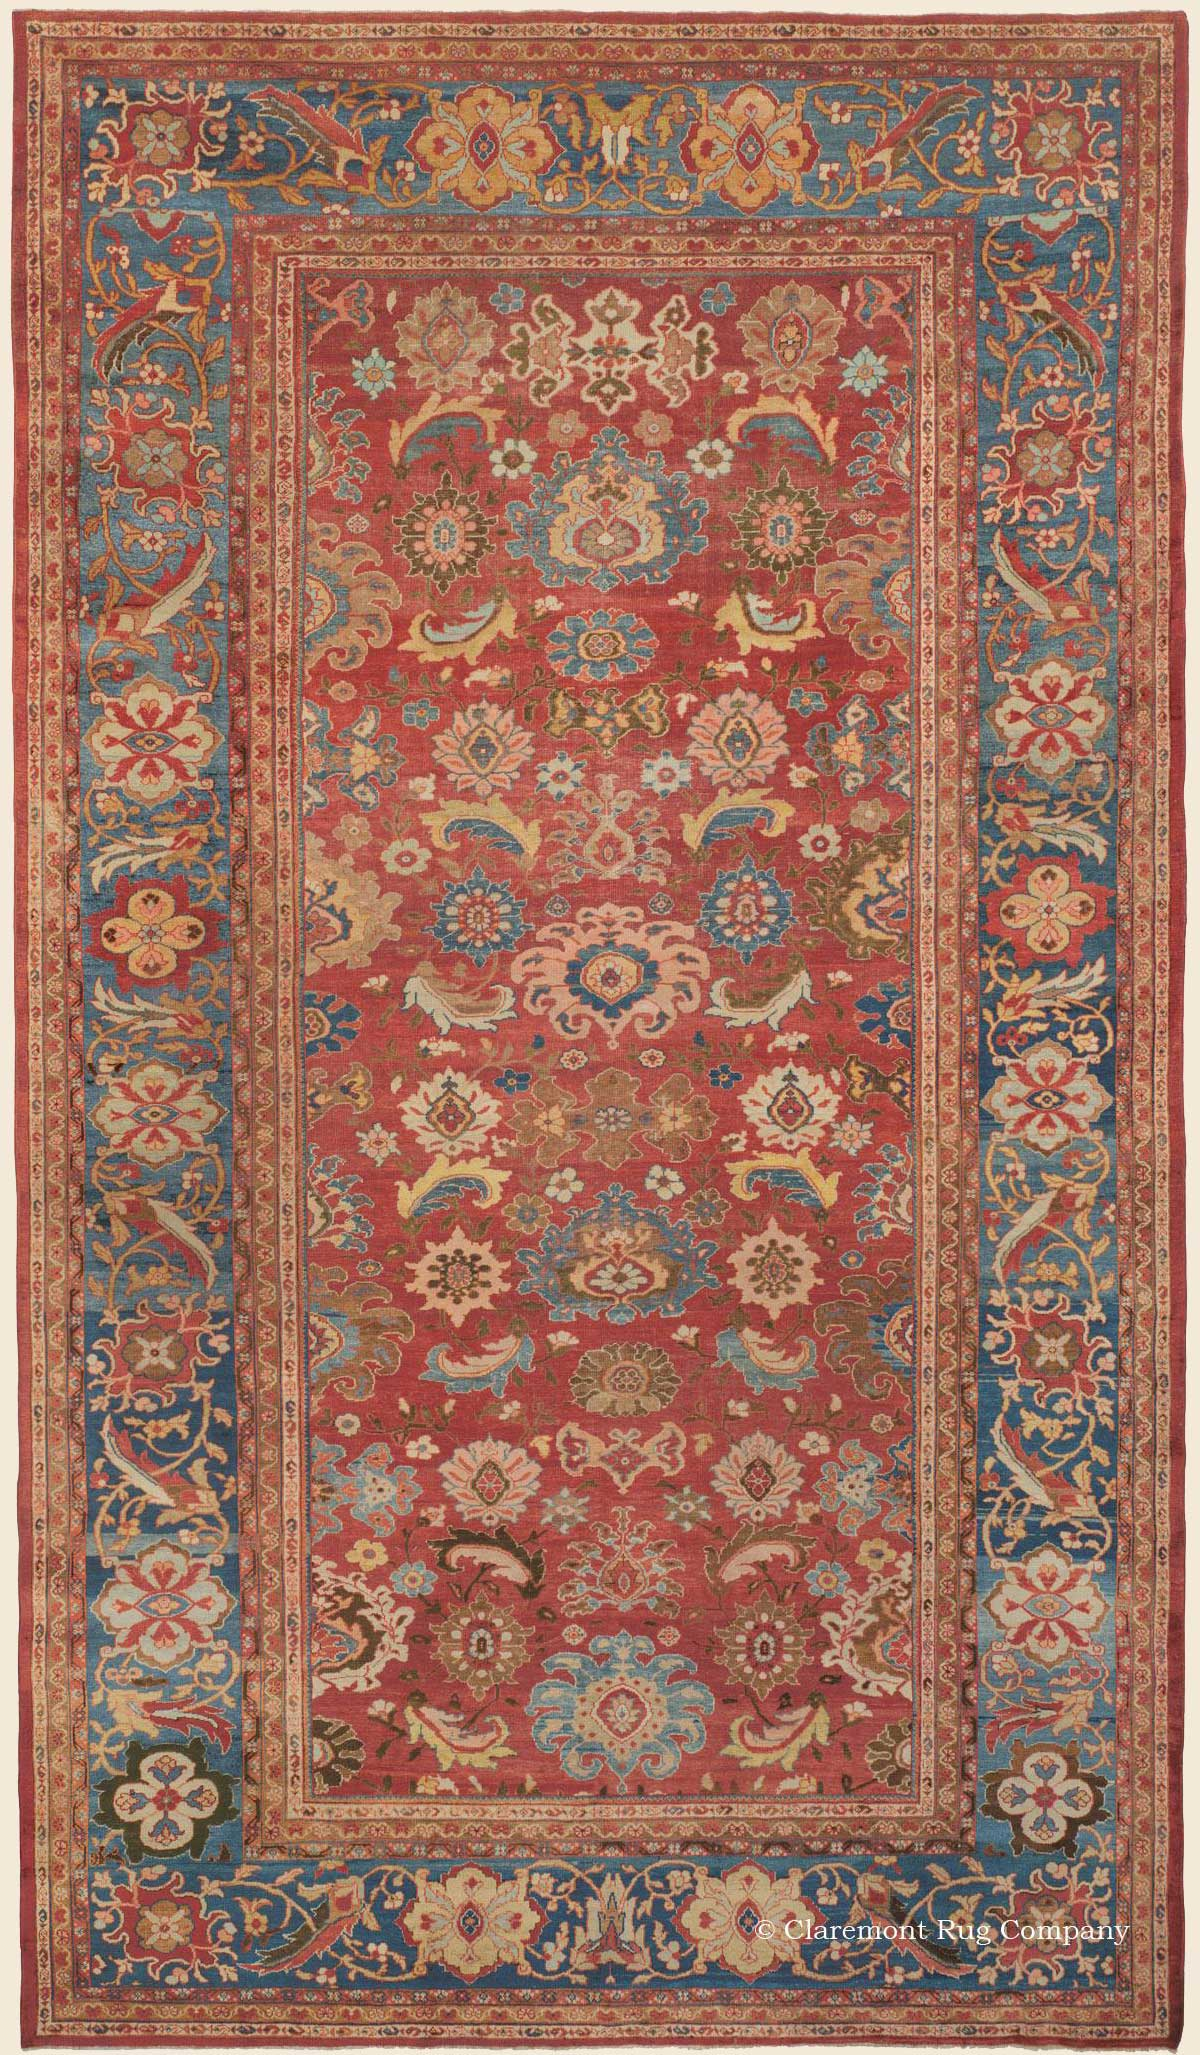 Sultanabad West Central Persian Antique Rug Claremont